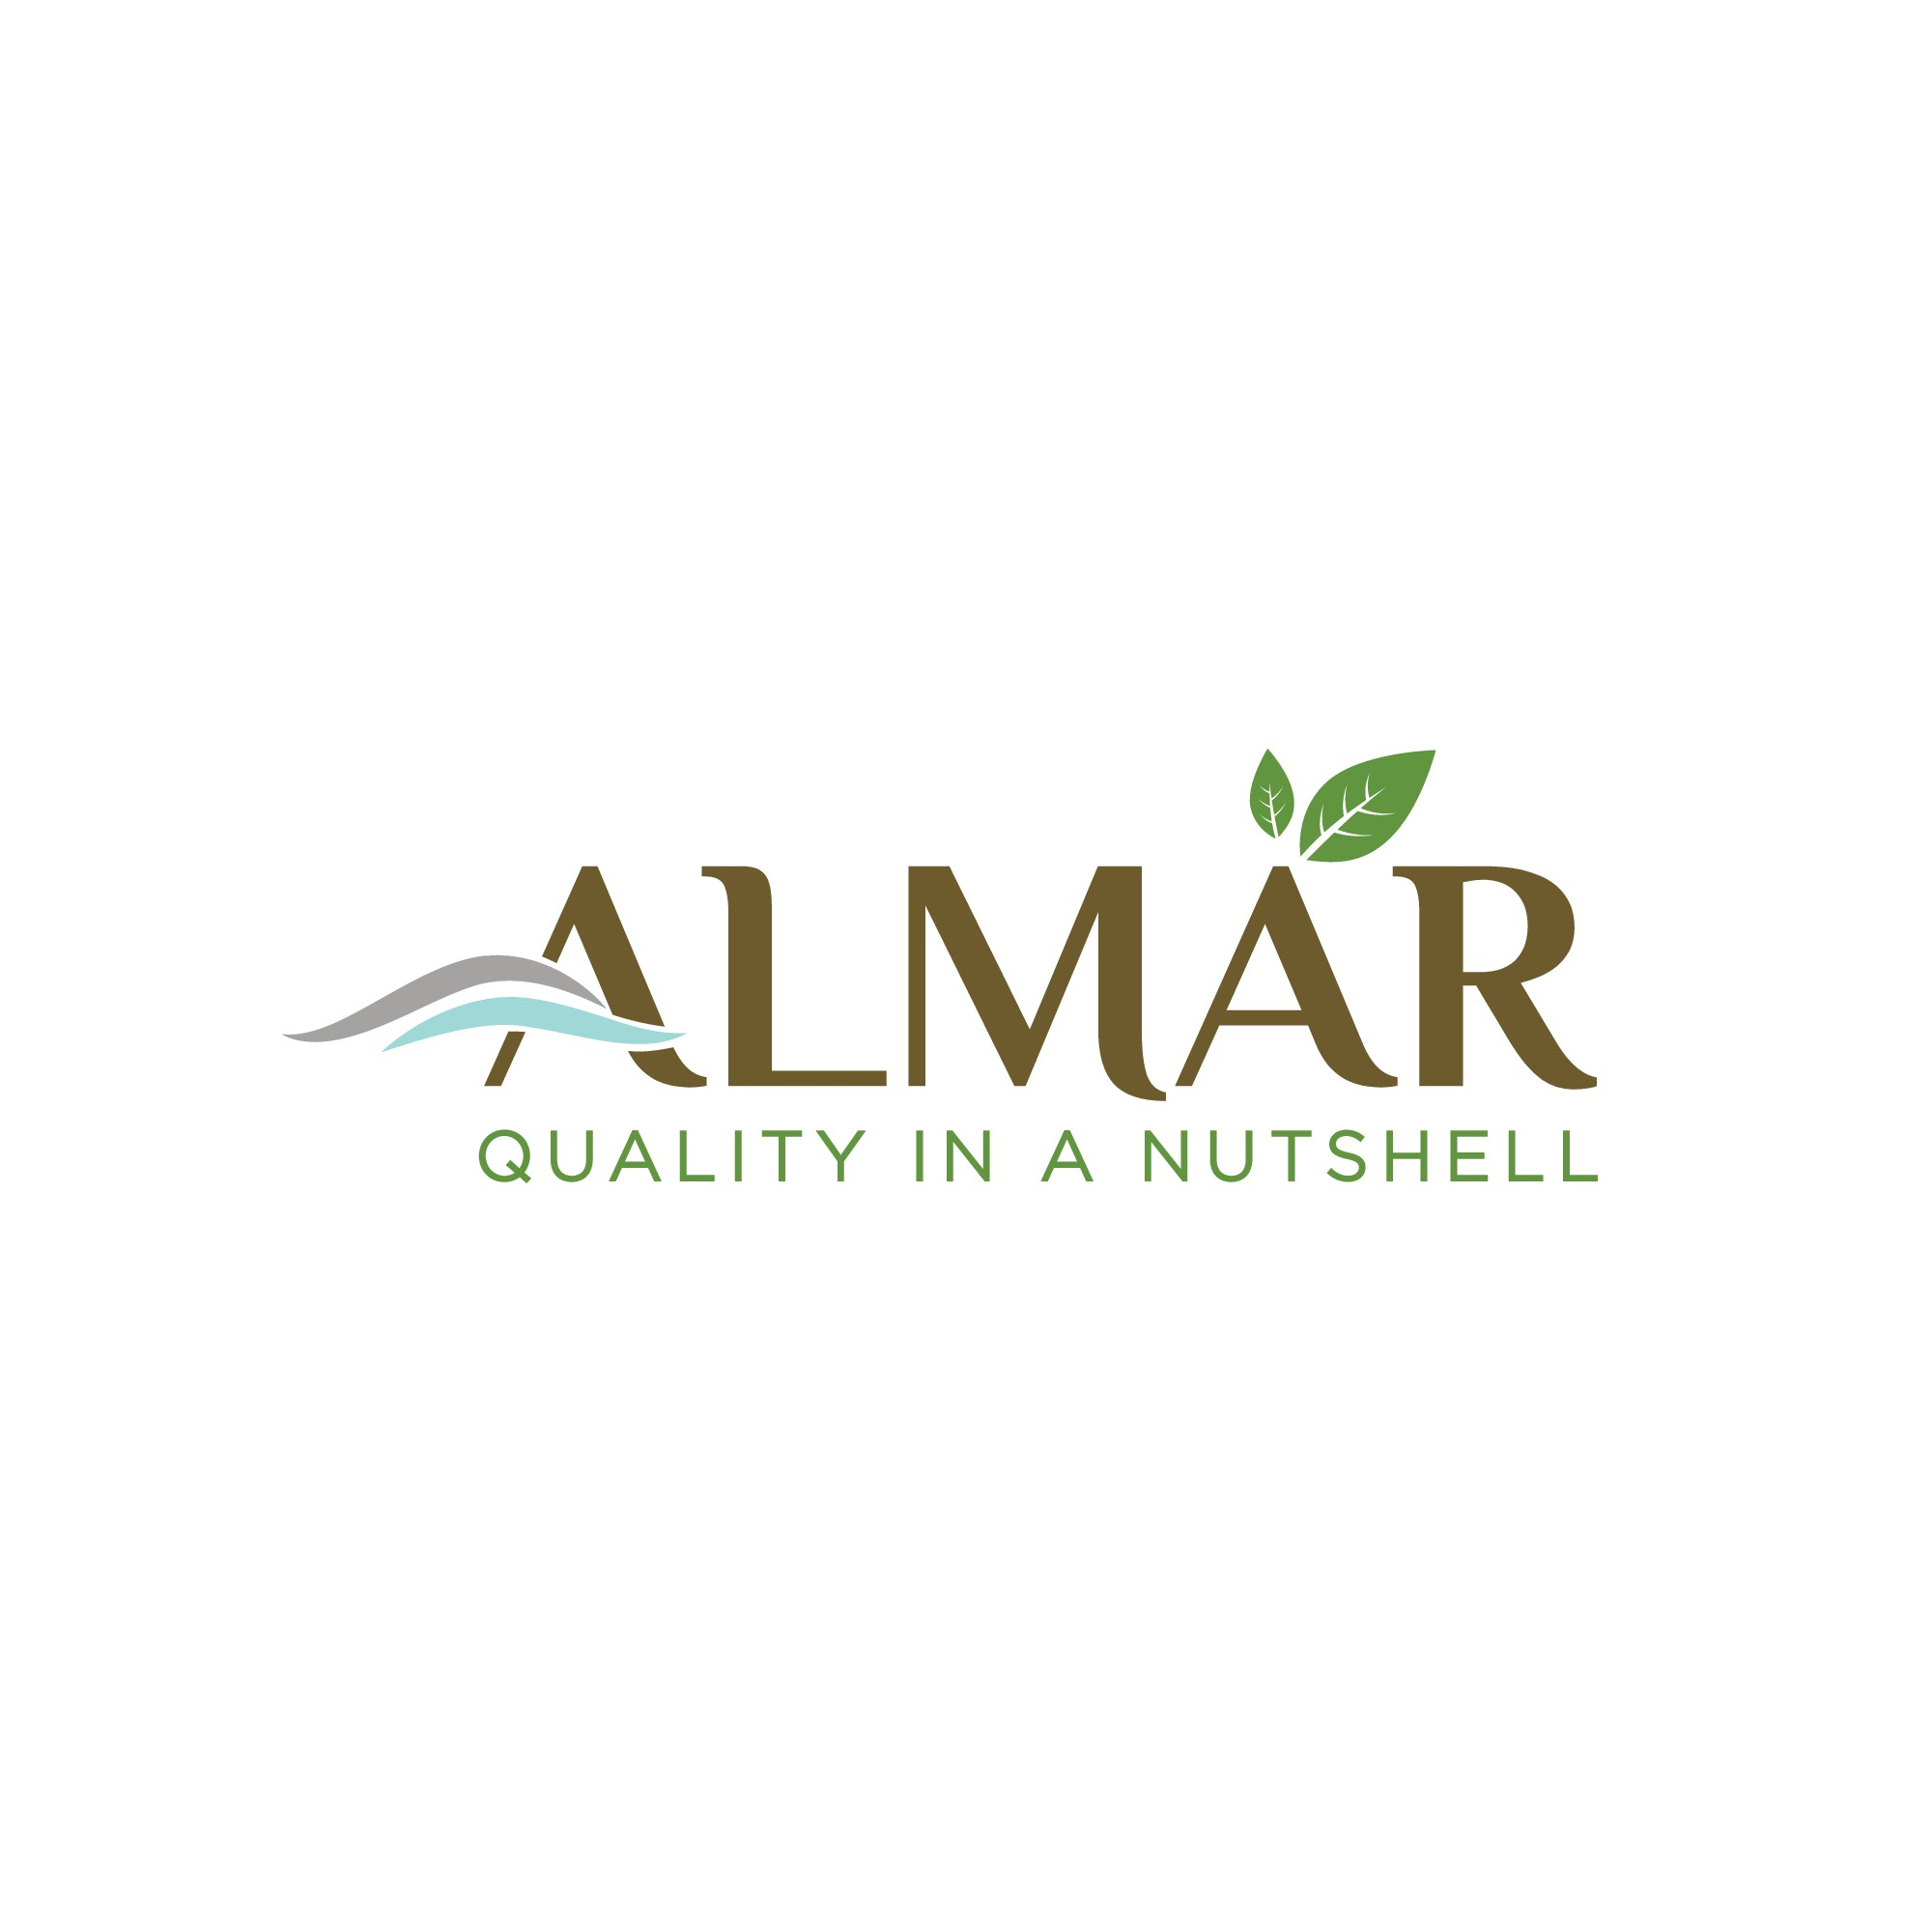 Logo for a walnut trading/manufacturing business in Chile